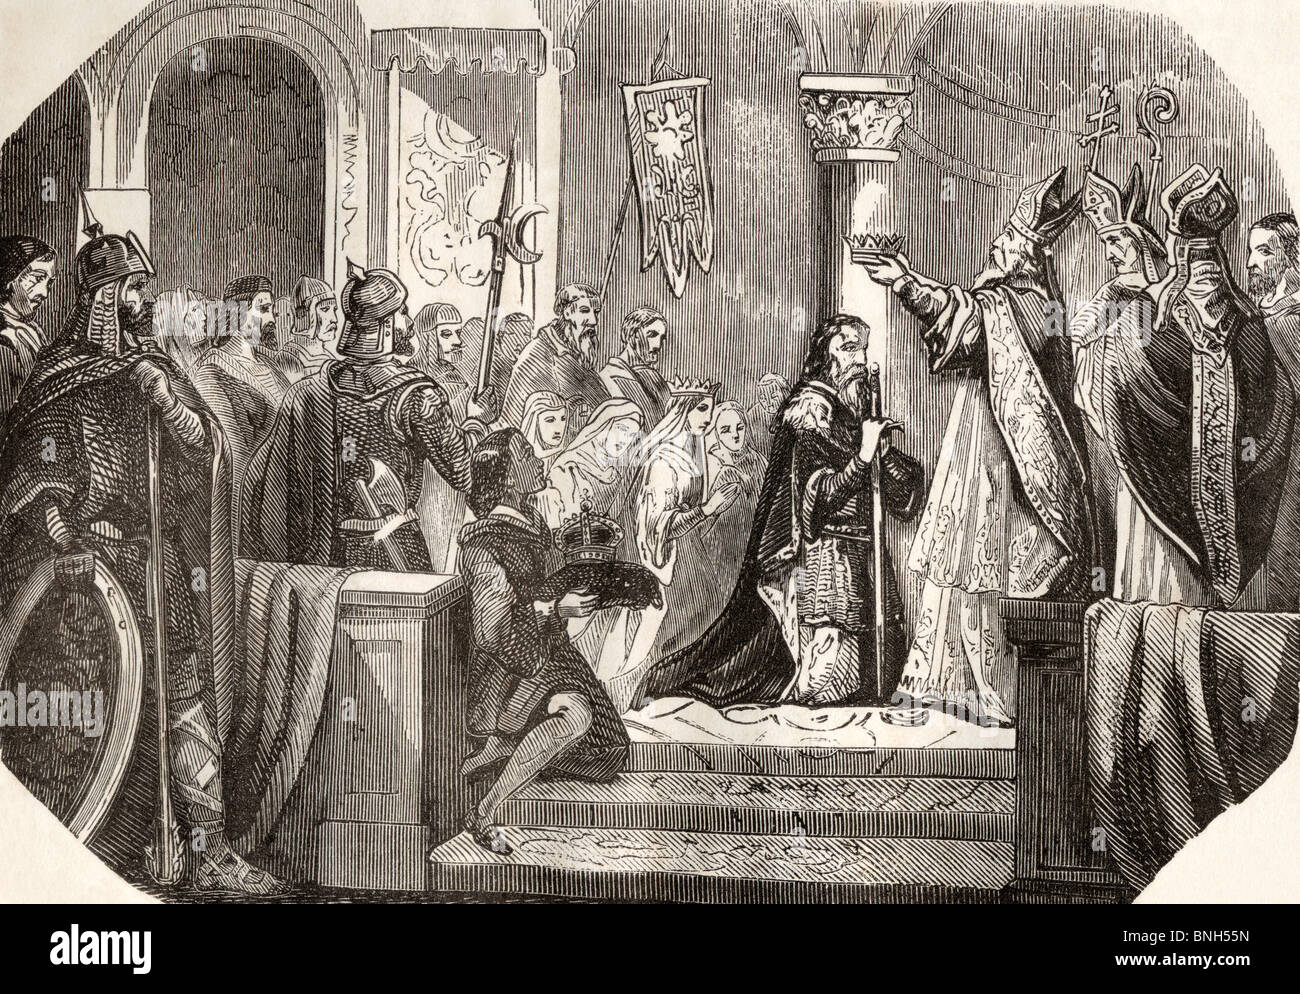 Coronation of Charlemagne as king of Italy. Charlemagne, c.742 to 814. King of the Franks and Emperor of the Romans - Stock Image